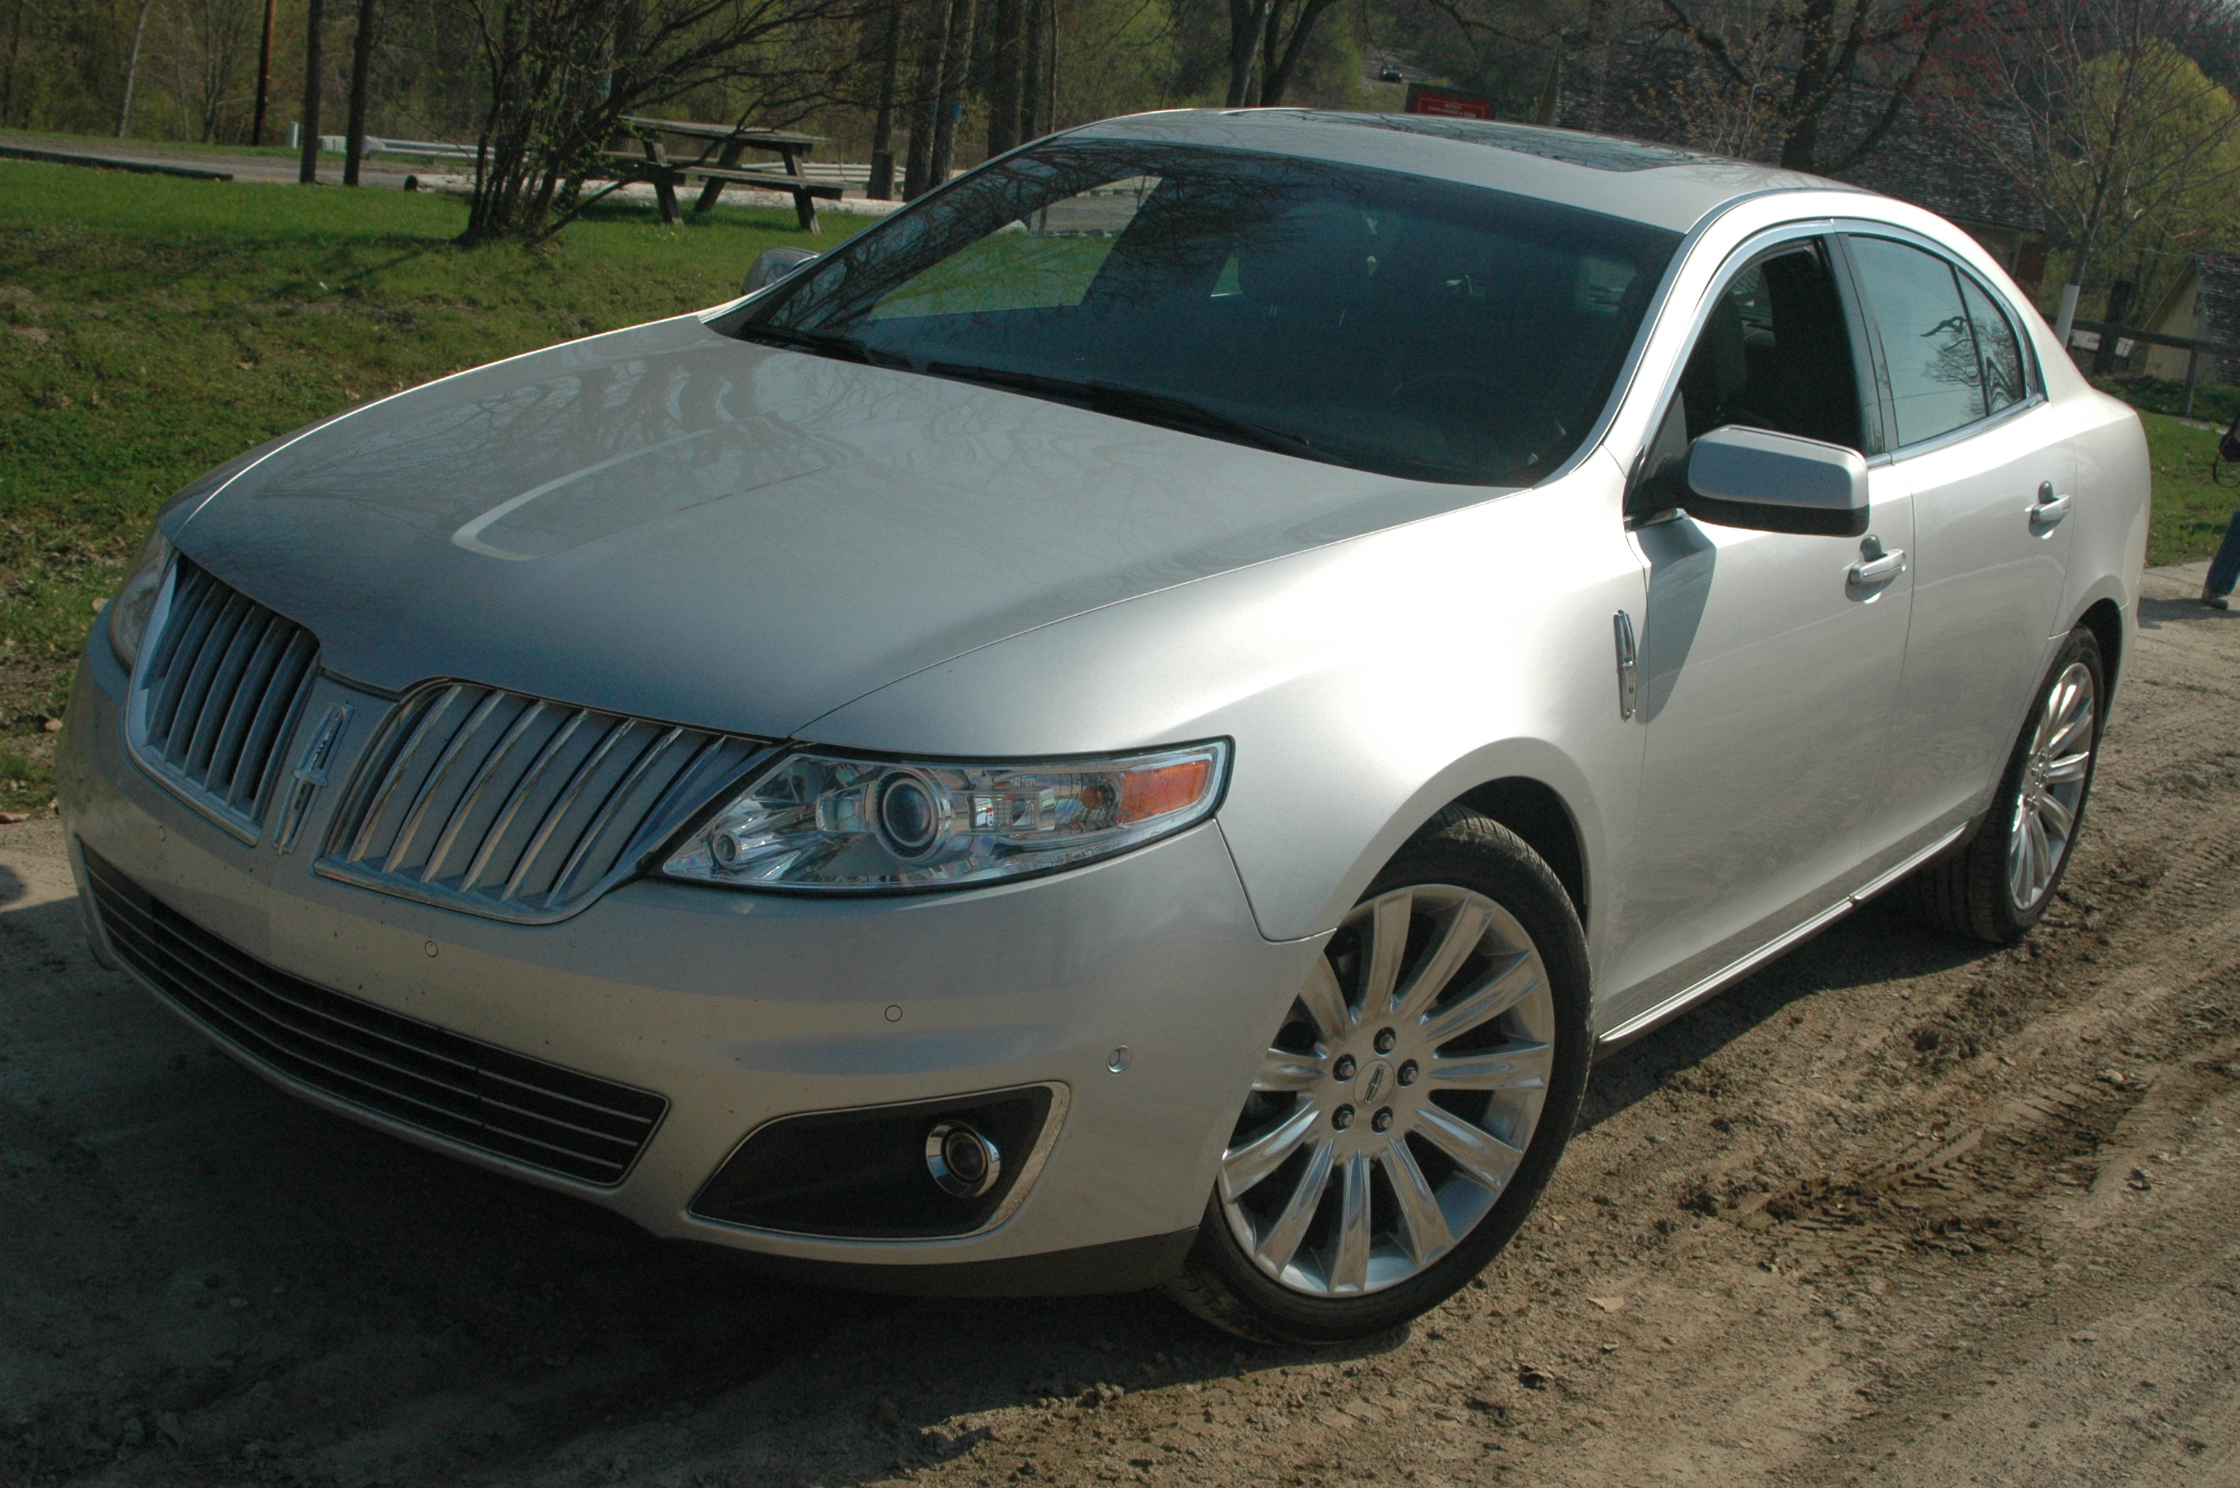 2010 lincoln mks information and photos momentcar. Black Bedroom Furniture Sets. Home Design Ideas